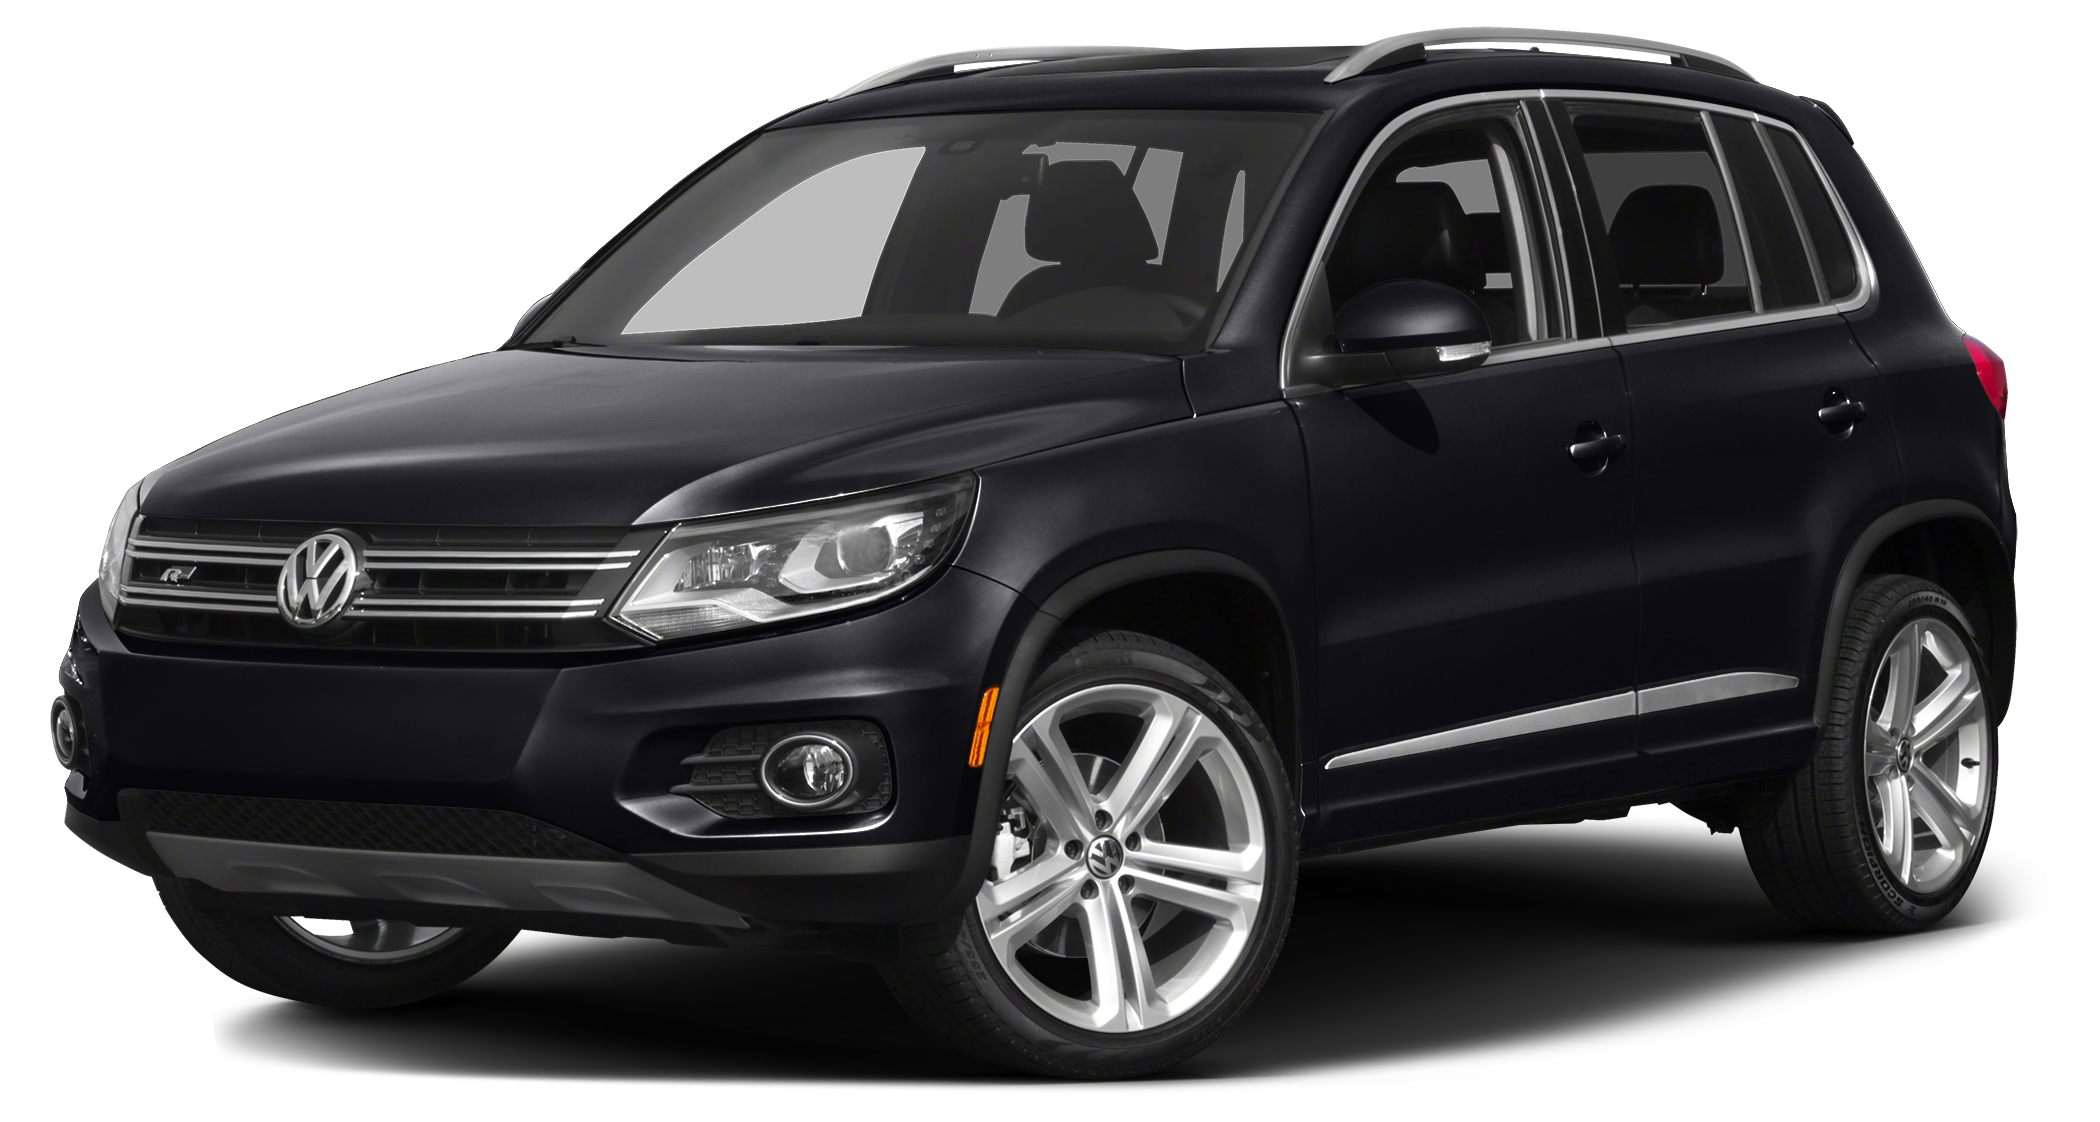 2014 Volkswagen Tiguan R-Line  WHEN IT COMES TOEXCELLENCE IN USED CAR SALES YOU KNOW YOURE AT